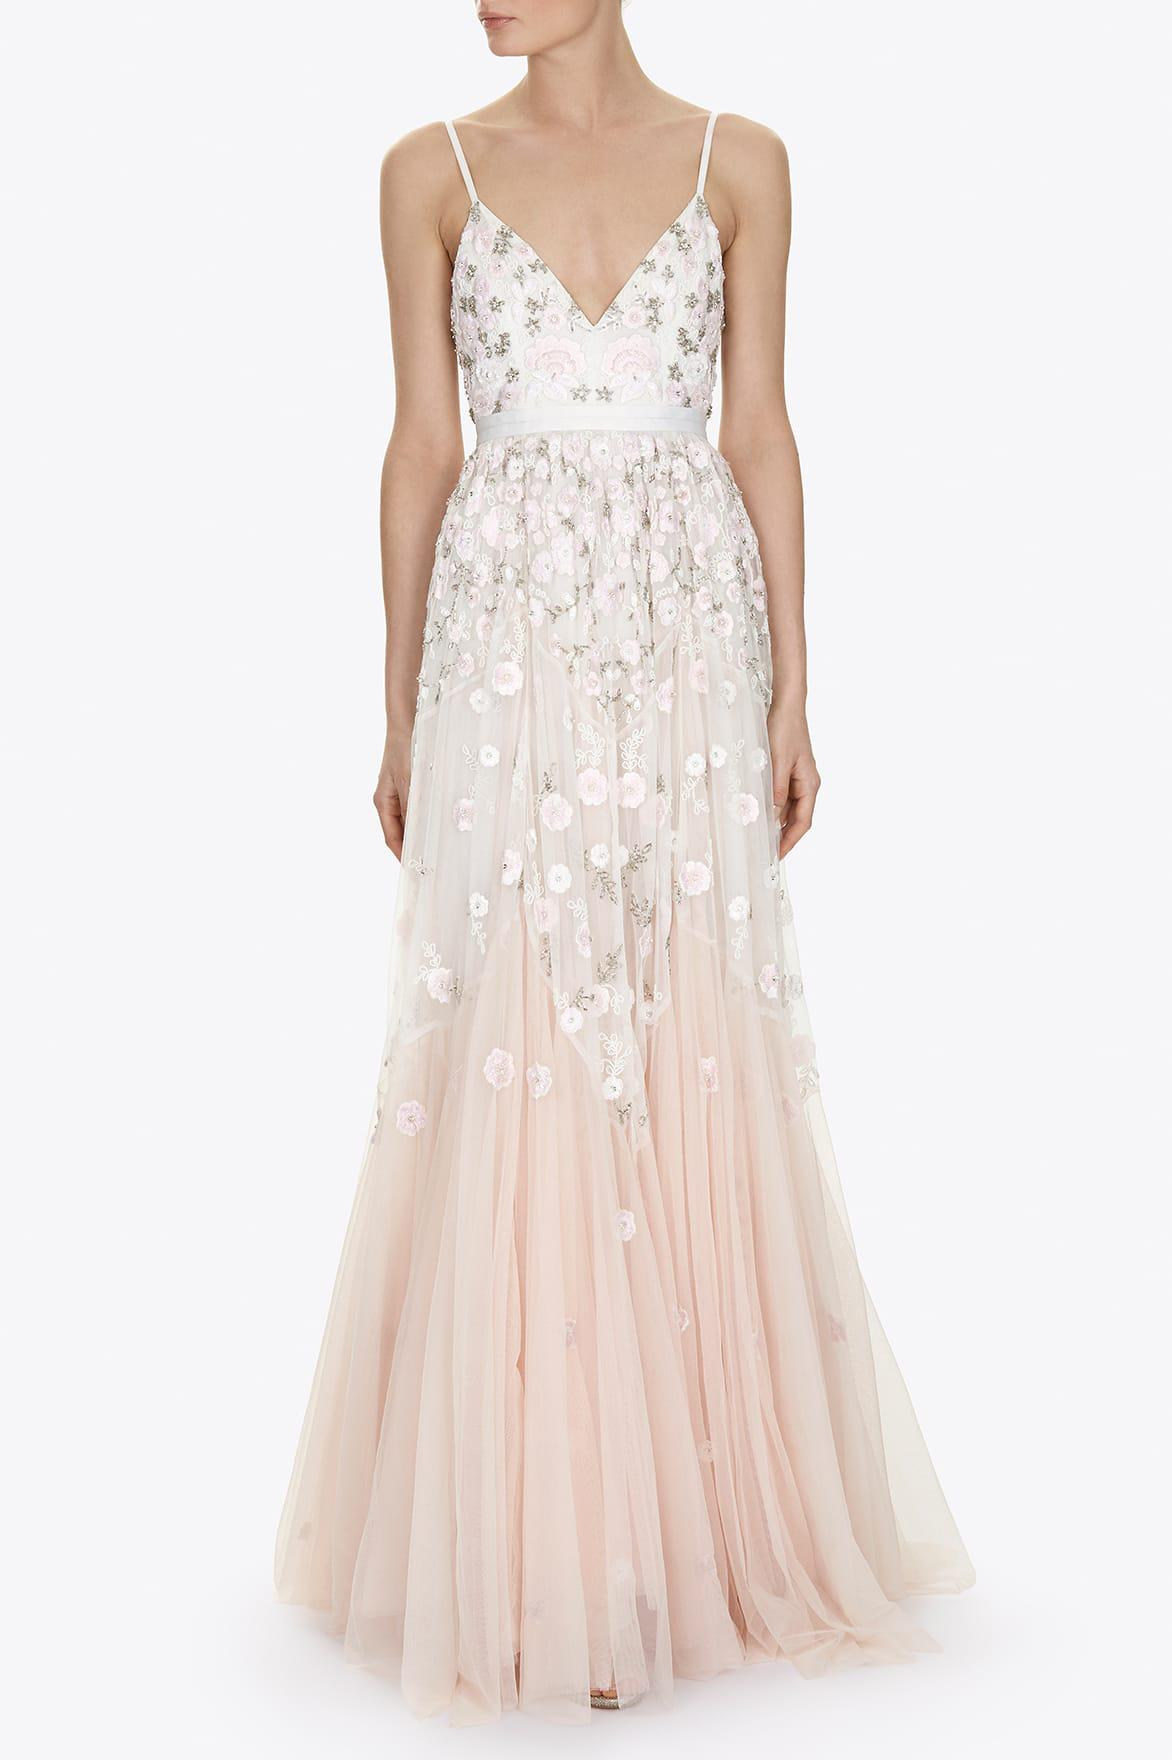 Where to buy needle and thread dresses